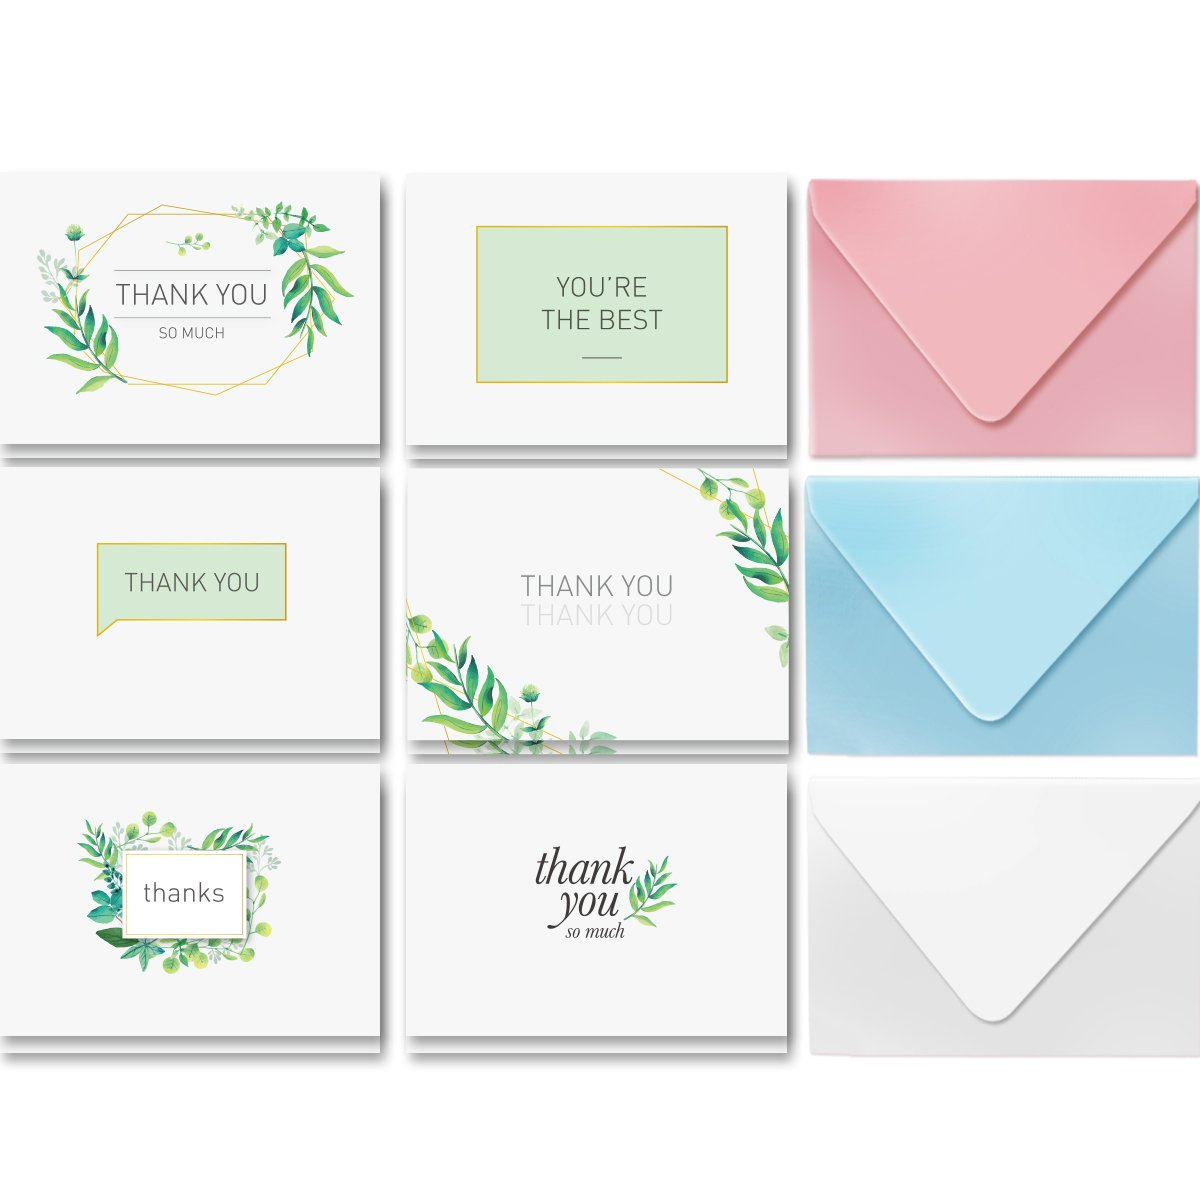 Thank You Cards-36 Assorted Boxed Pack - Elegant Floral Green & Black & White Card Designs: Bulk Note Box for Graduation, Wedding, Bridal Party, Baby Shower, Men & Women Sympathy